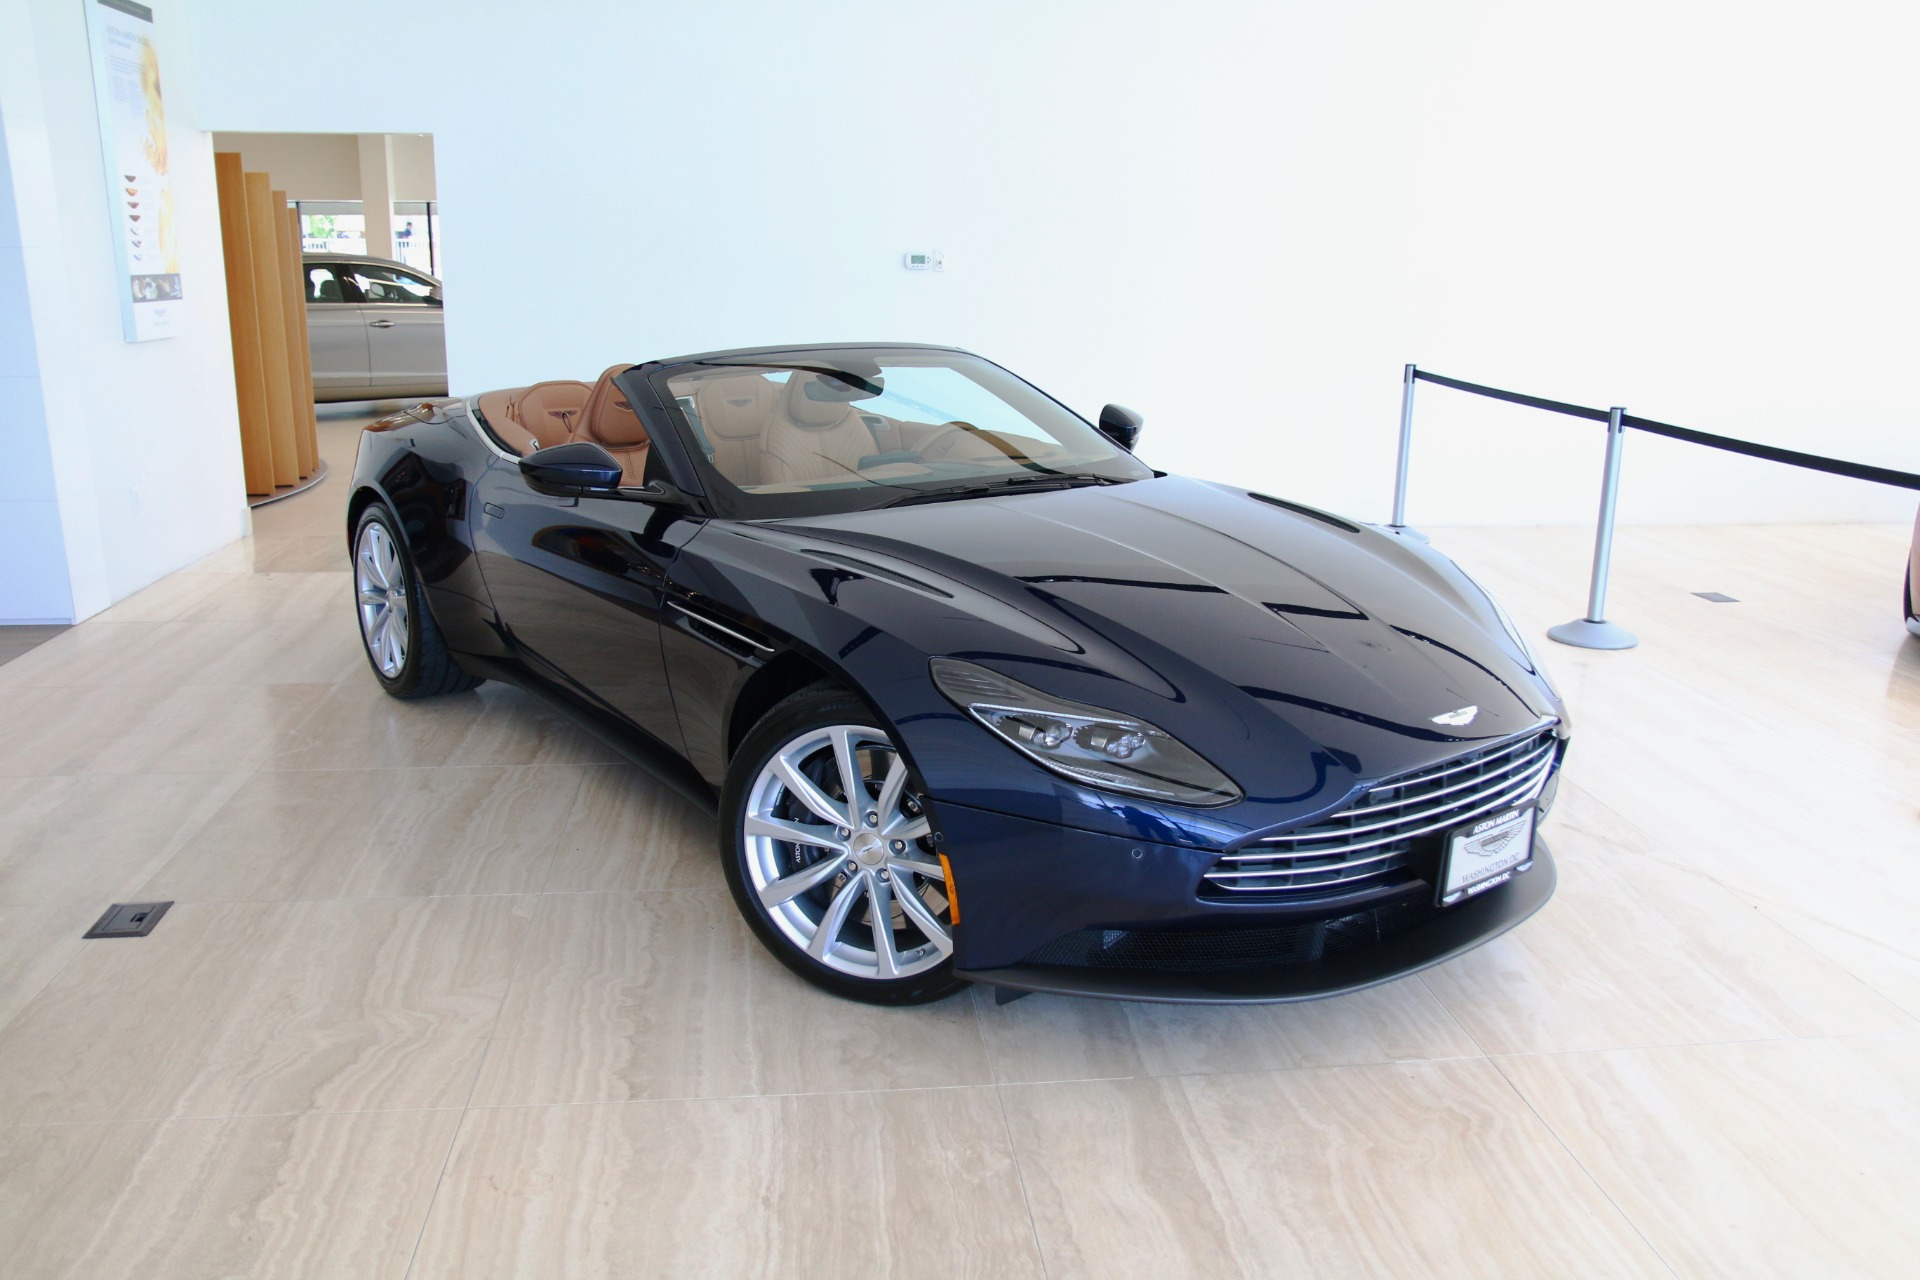 2019 Aston Martin Db11 Volante Stock 9nm06056 For Sale Near Vienna